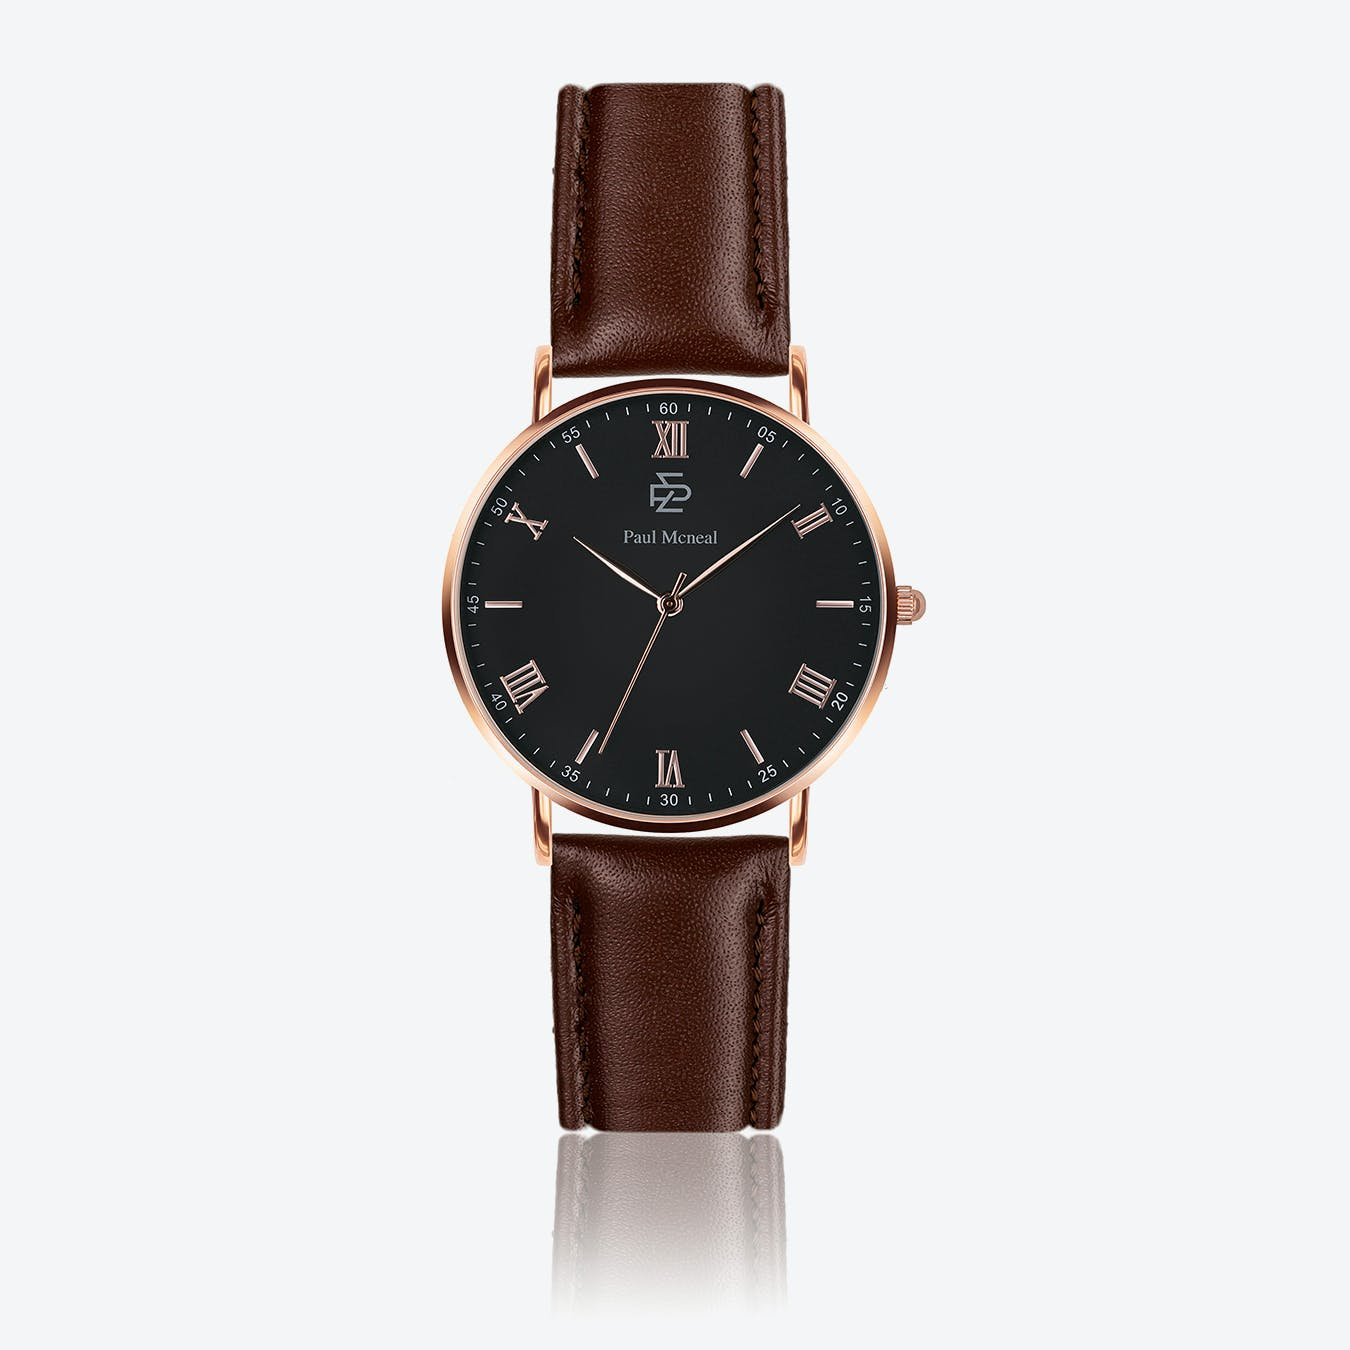 Smooth Brown Leather Watch w/ Matte Black Face - Ø 40 mm